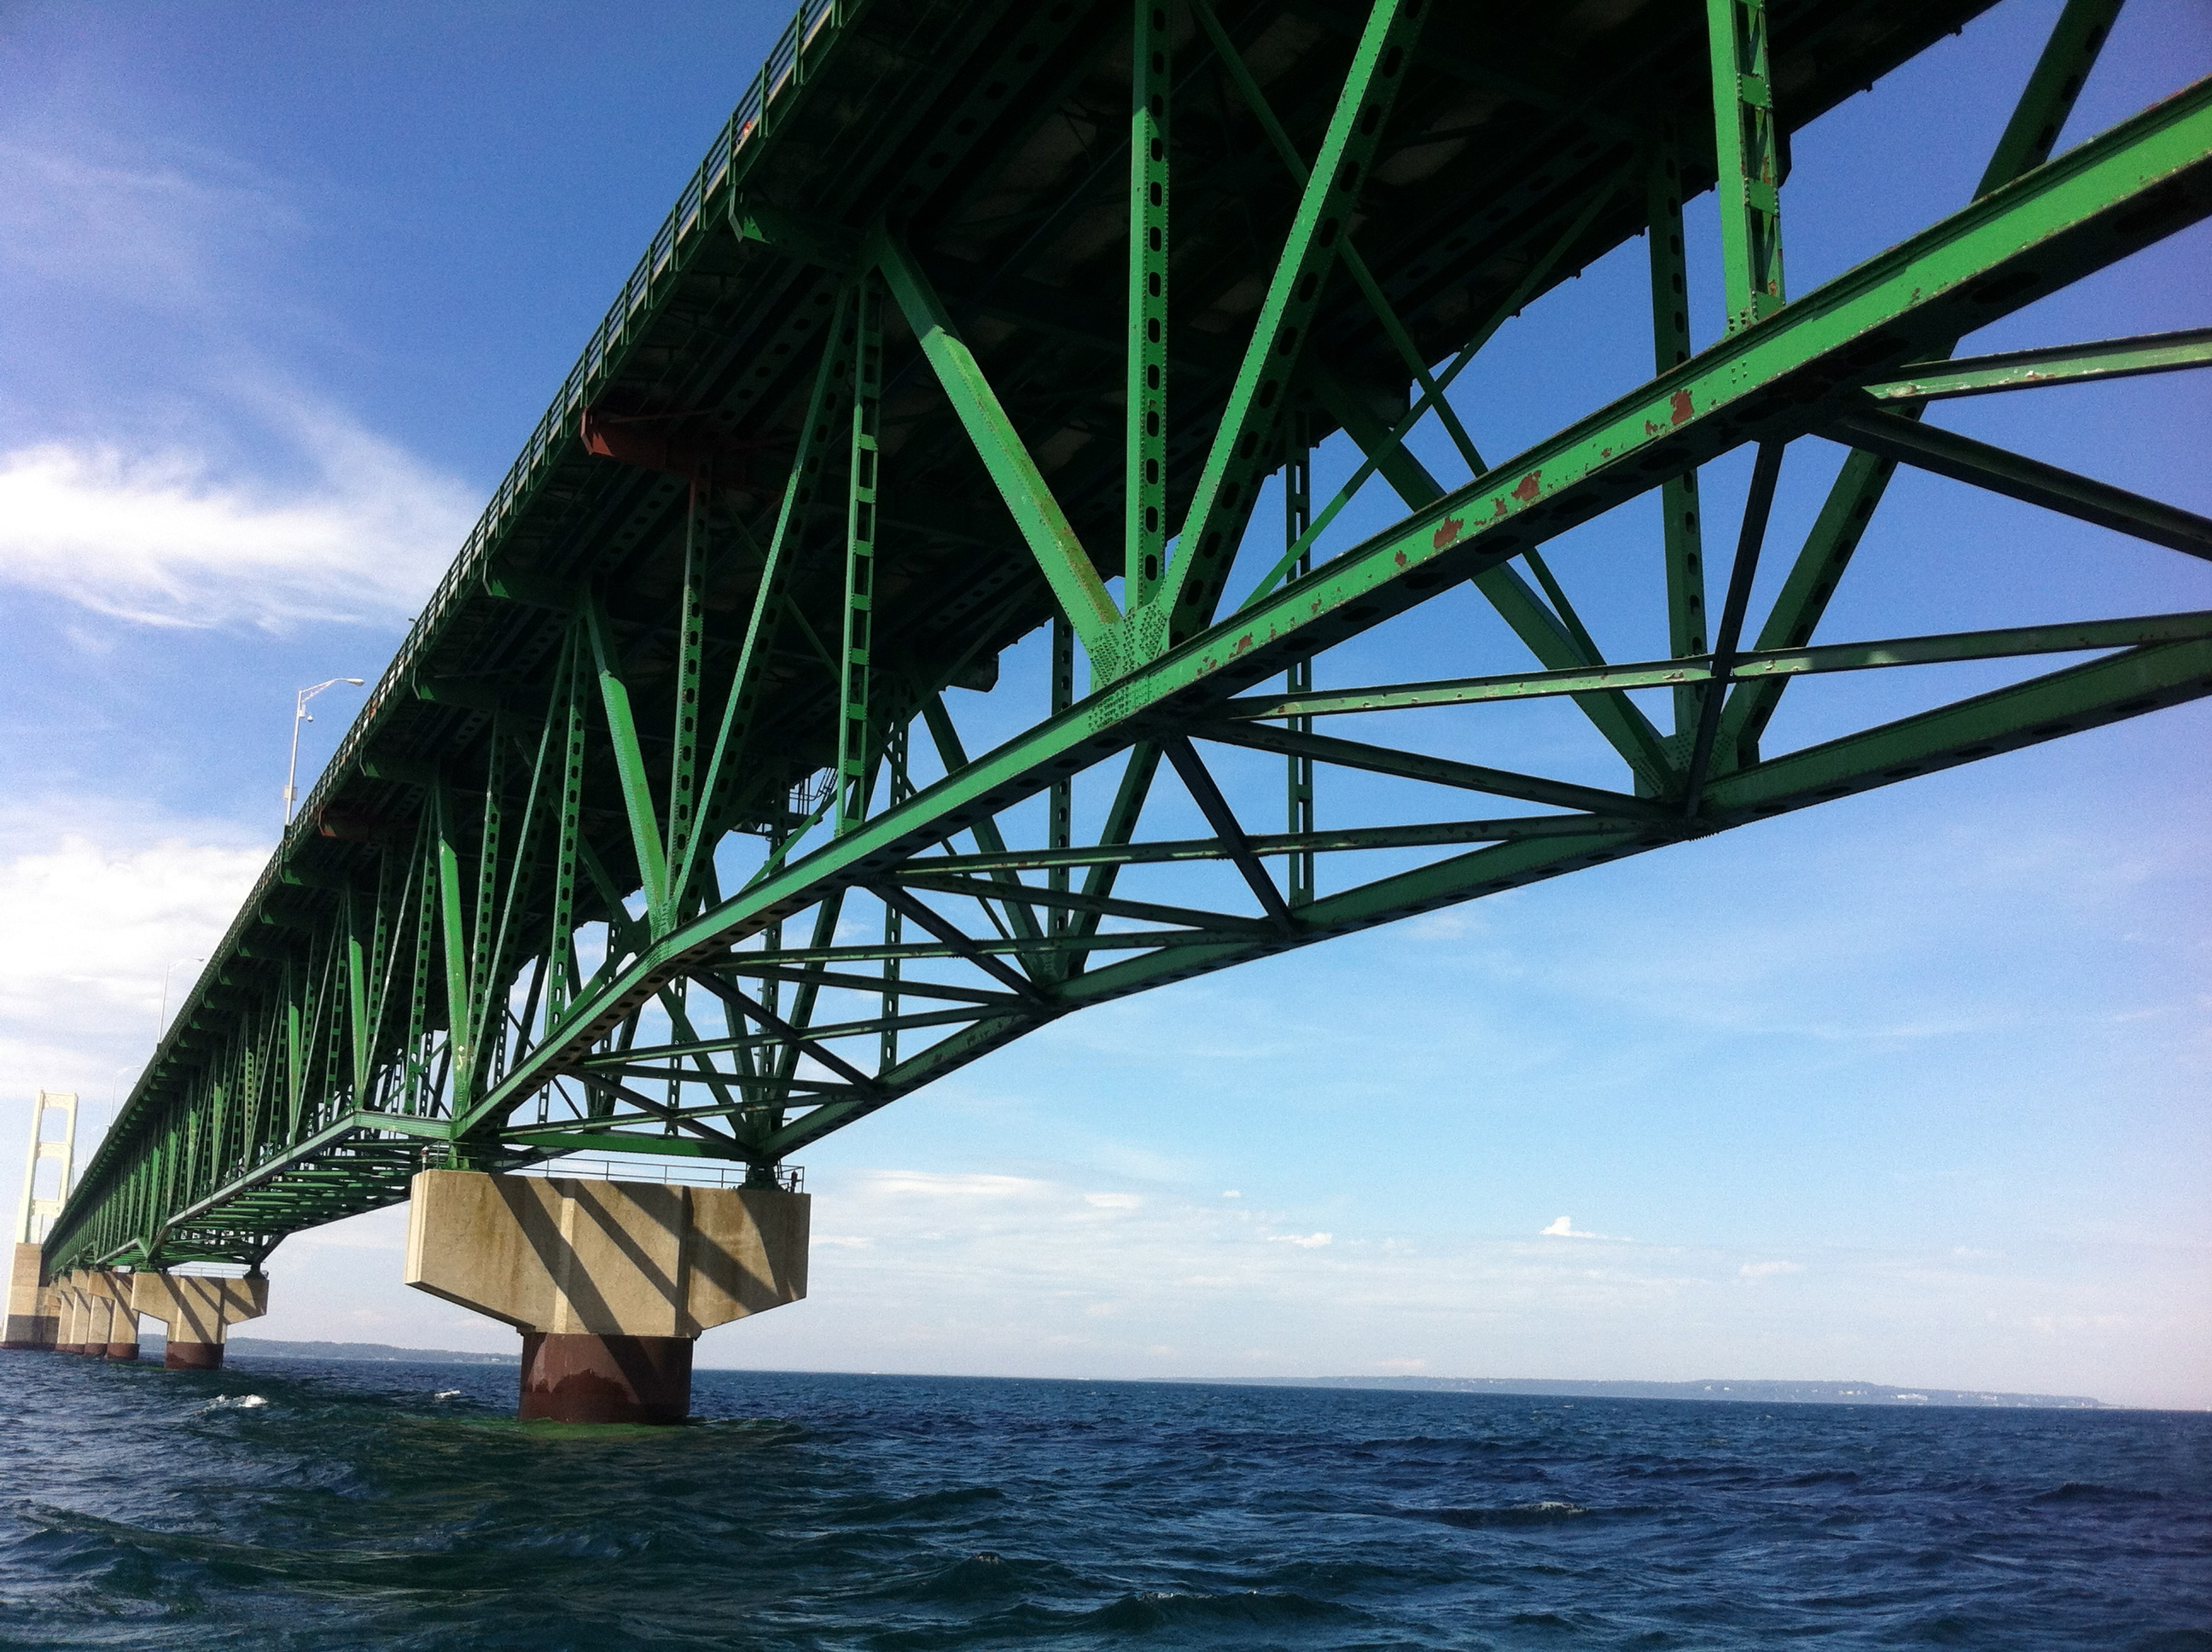 Mackinac Bridge from Straits of Mackinac during tour on the Straits Area Tour - Photo courtesy of Gregory Varnum via Wikimedia Commons